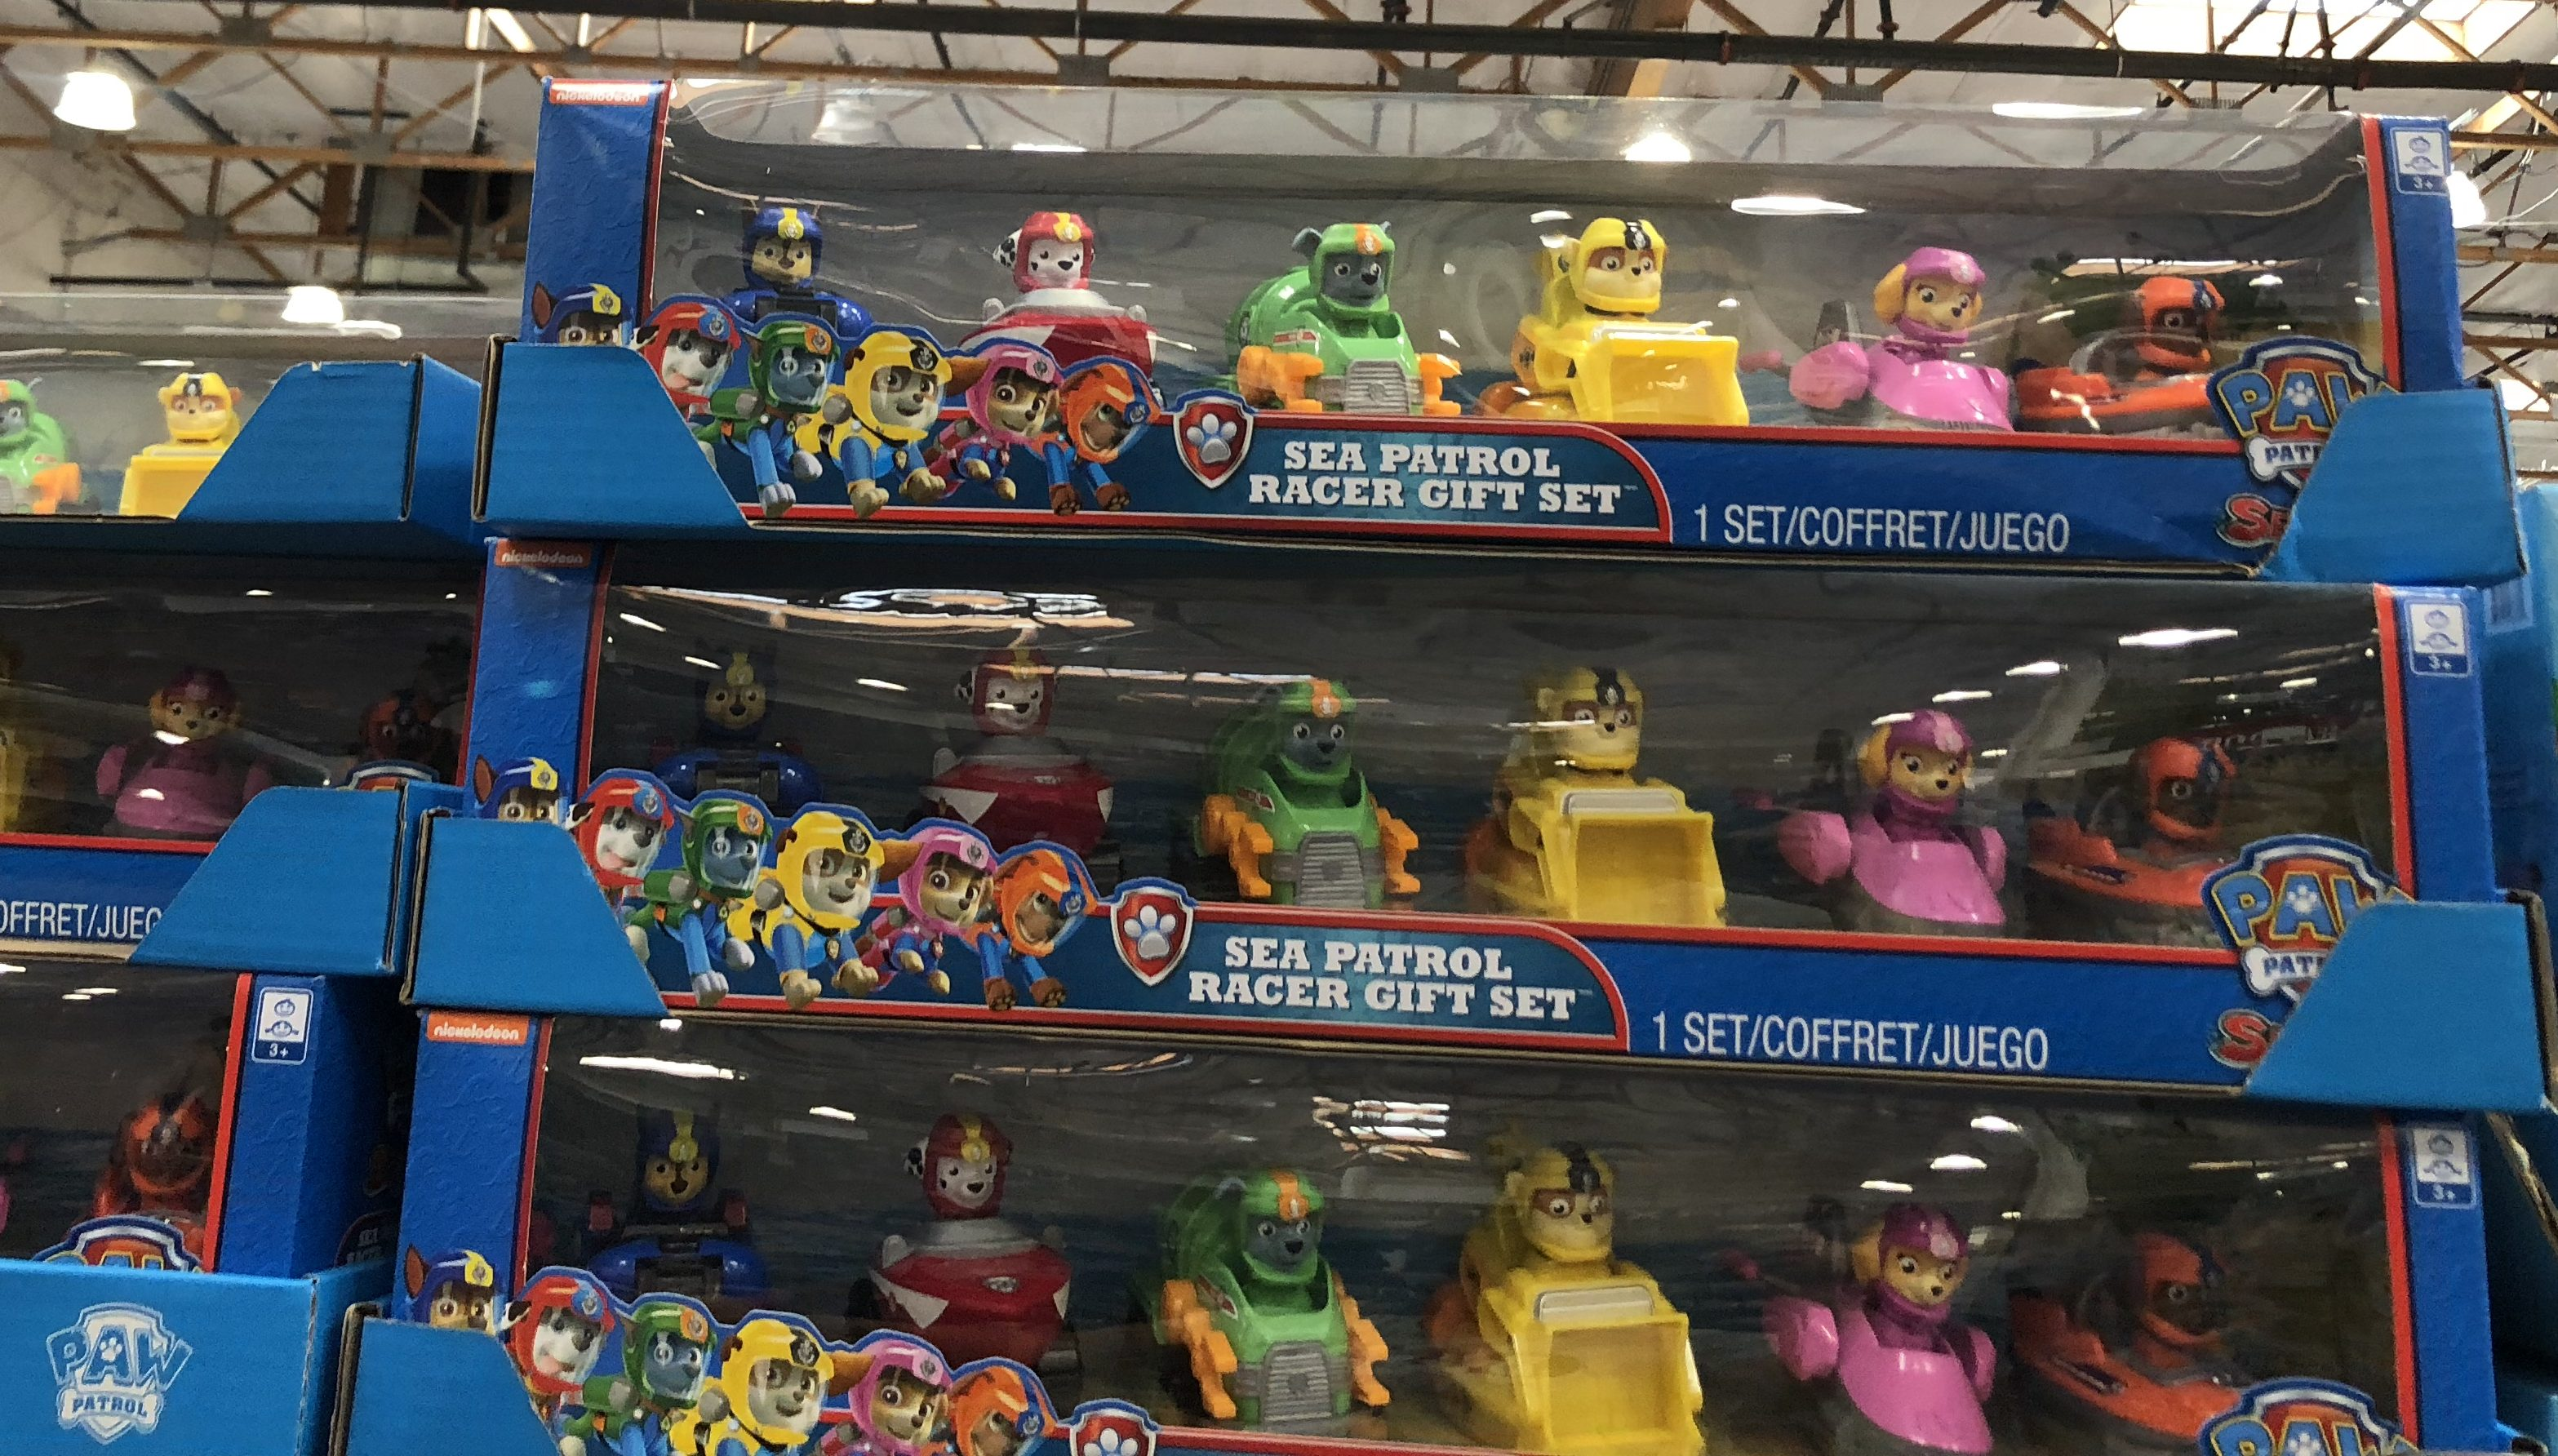 The best holiday toy deals for 2018 include the Sea Patrol Racer Gift Set at Costco